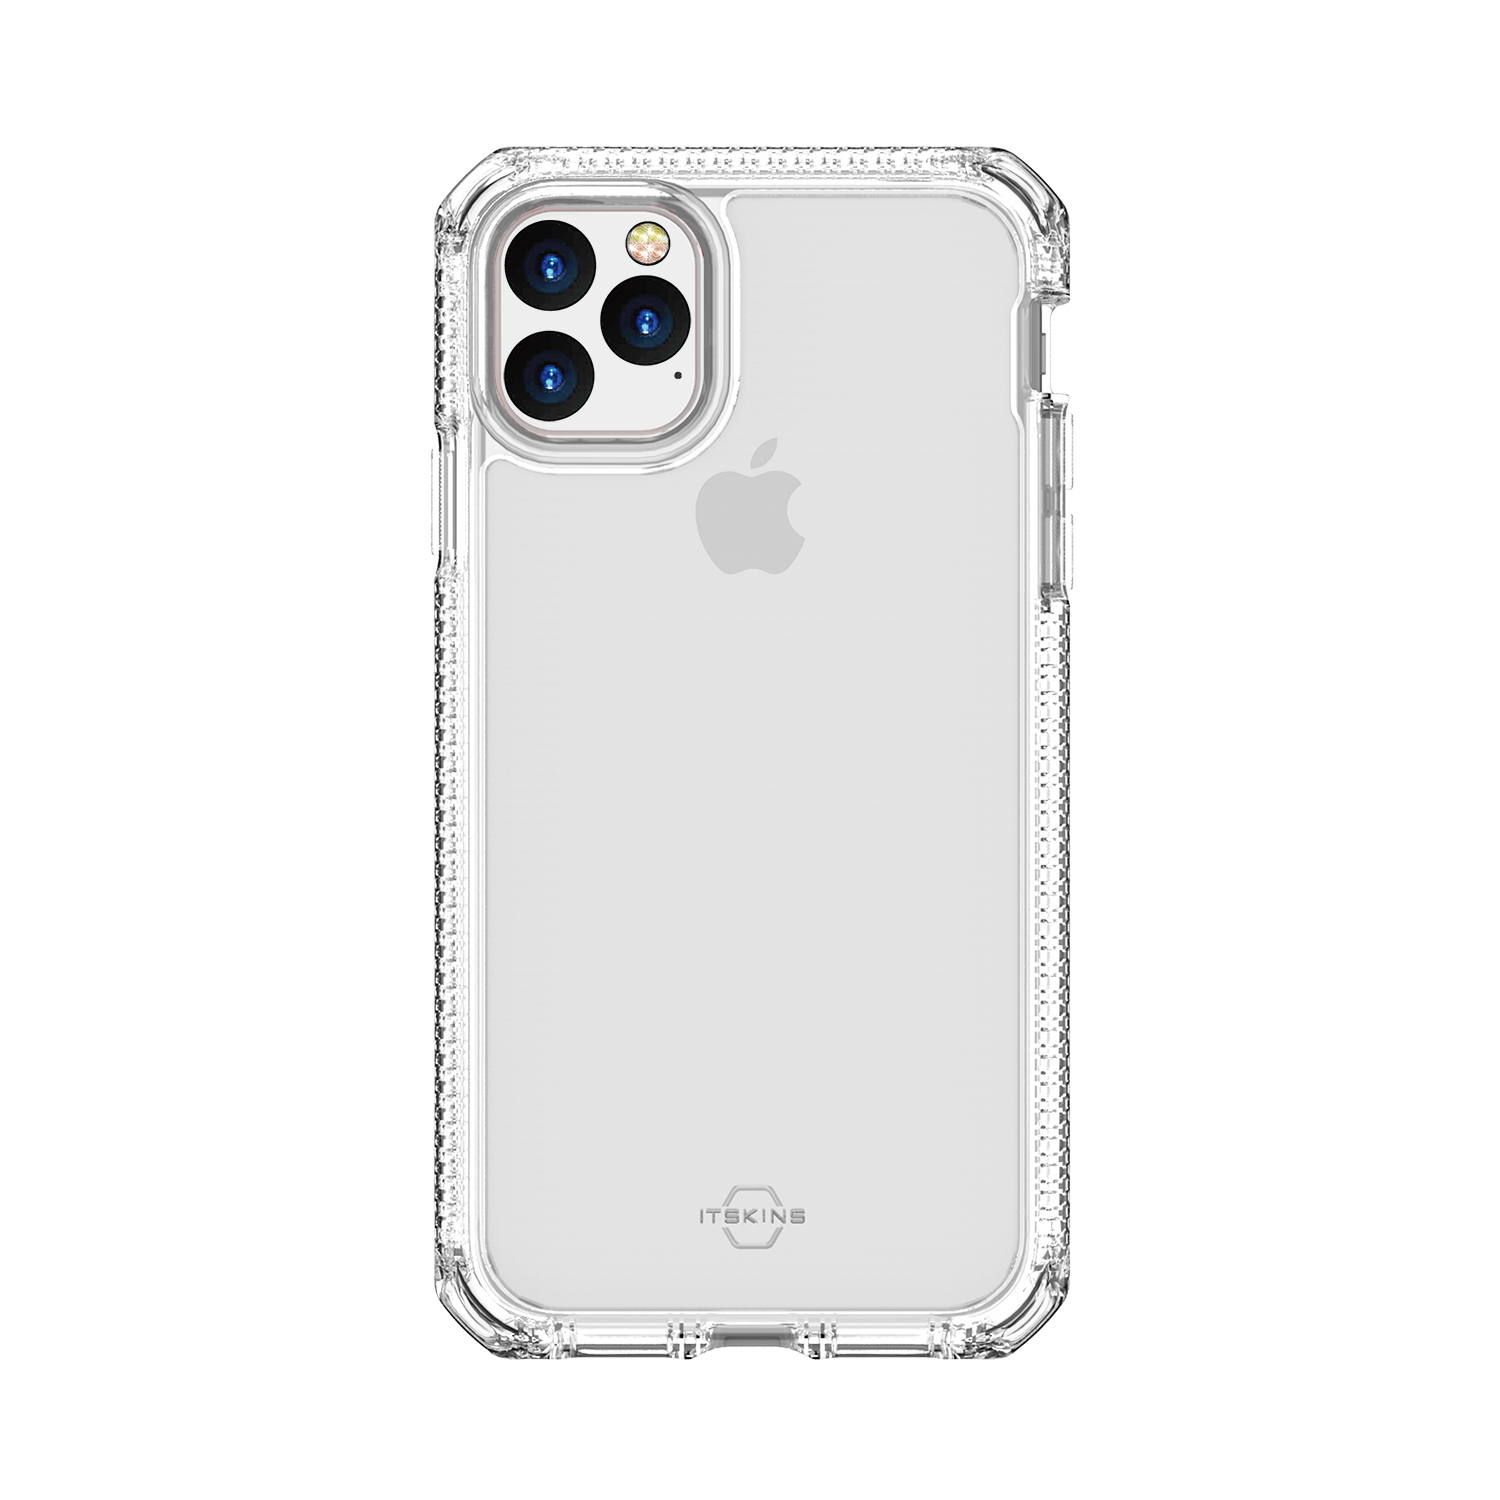 ITSKINS Supreme Clear Case for iPhone 11, 11 Pro & 11 Pro Max